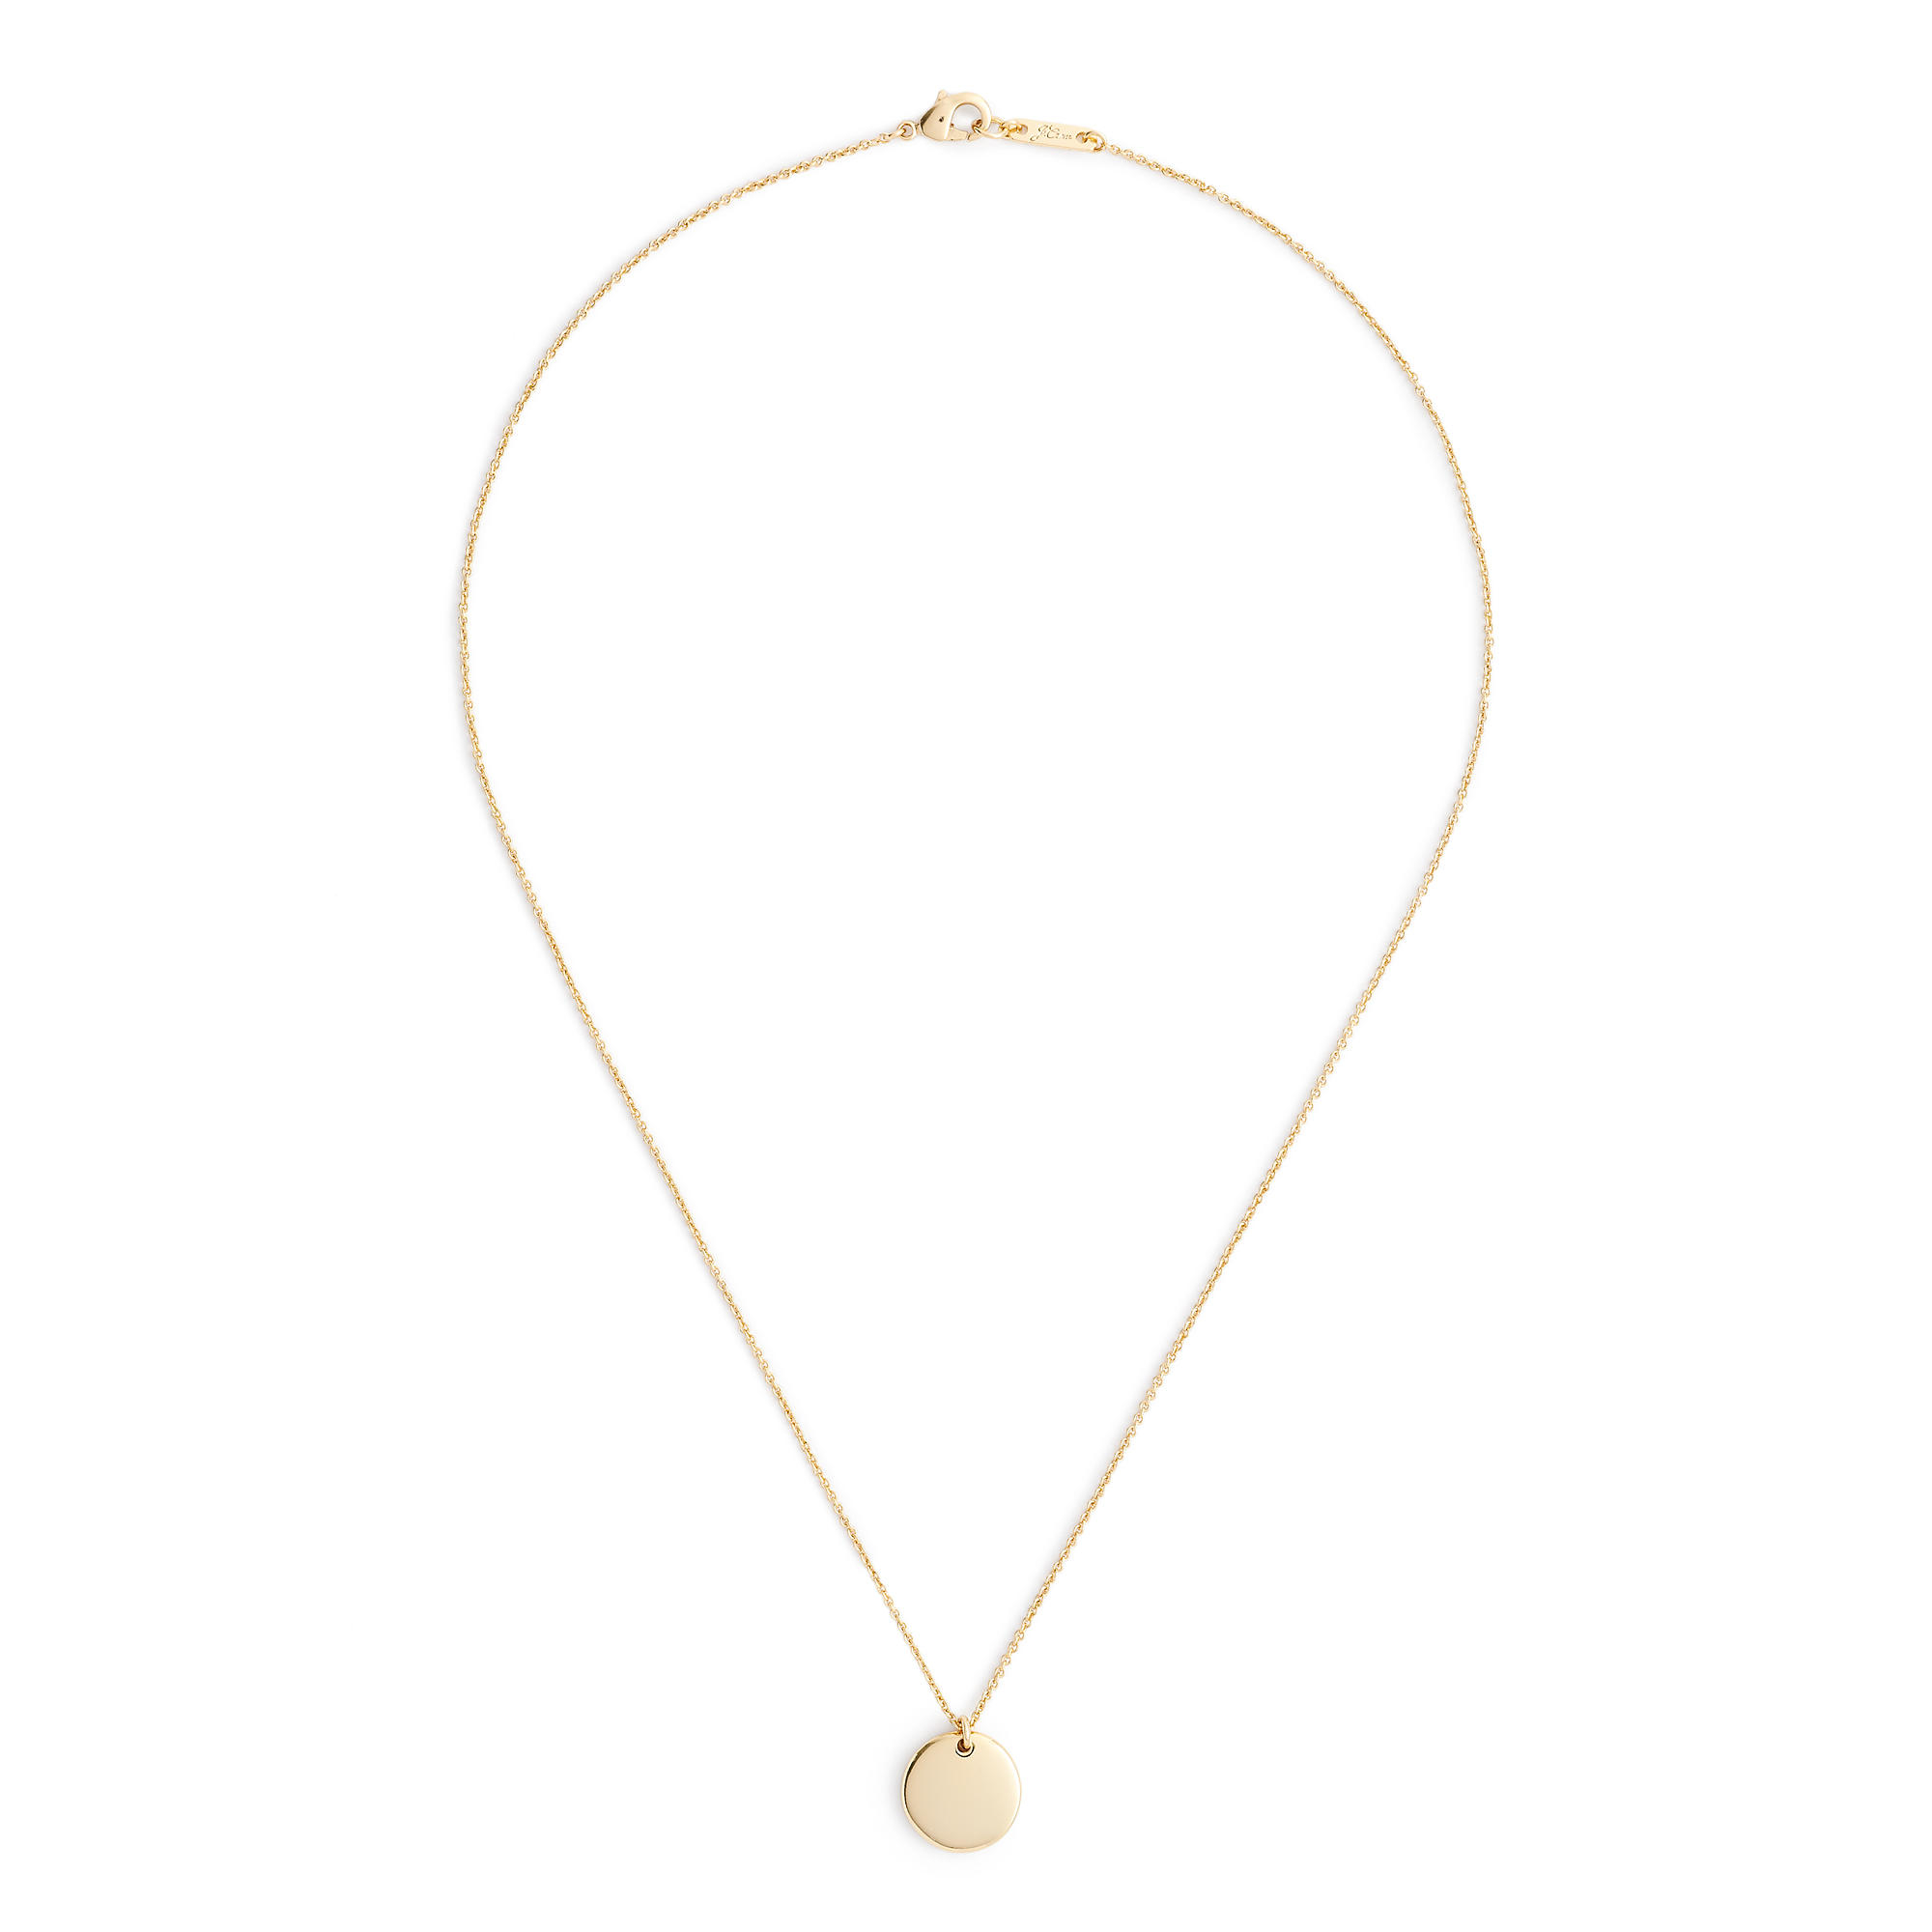 j crew 14k gold circle charm necklace with 20 1 2 quot chain